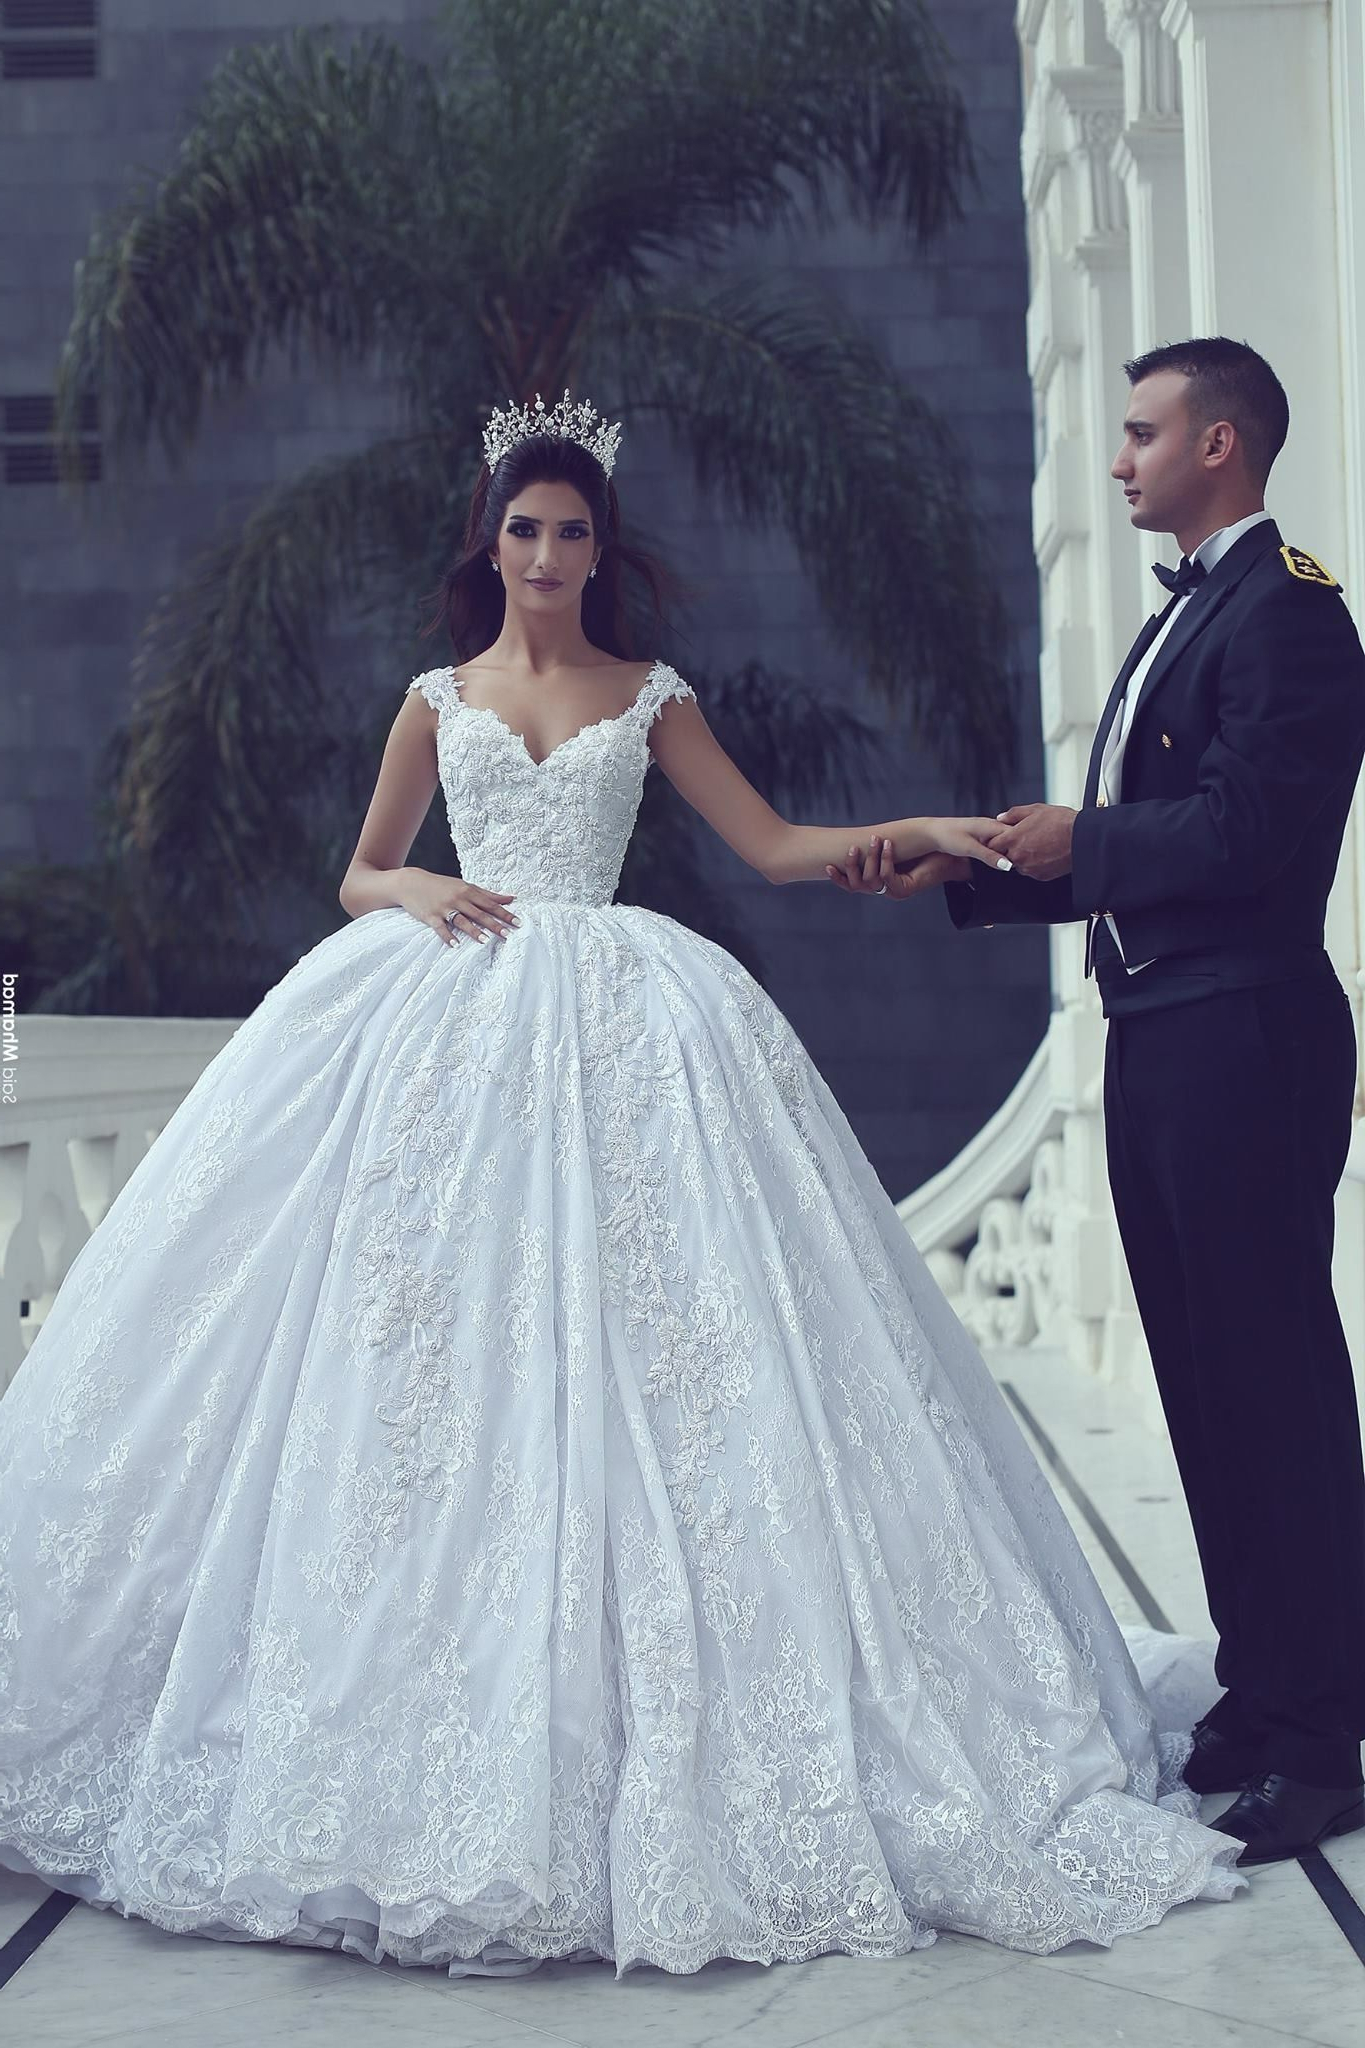 Featured Photo of Sleek And Big Princess Ball Gown Updos For Brides